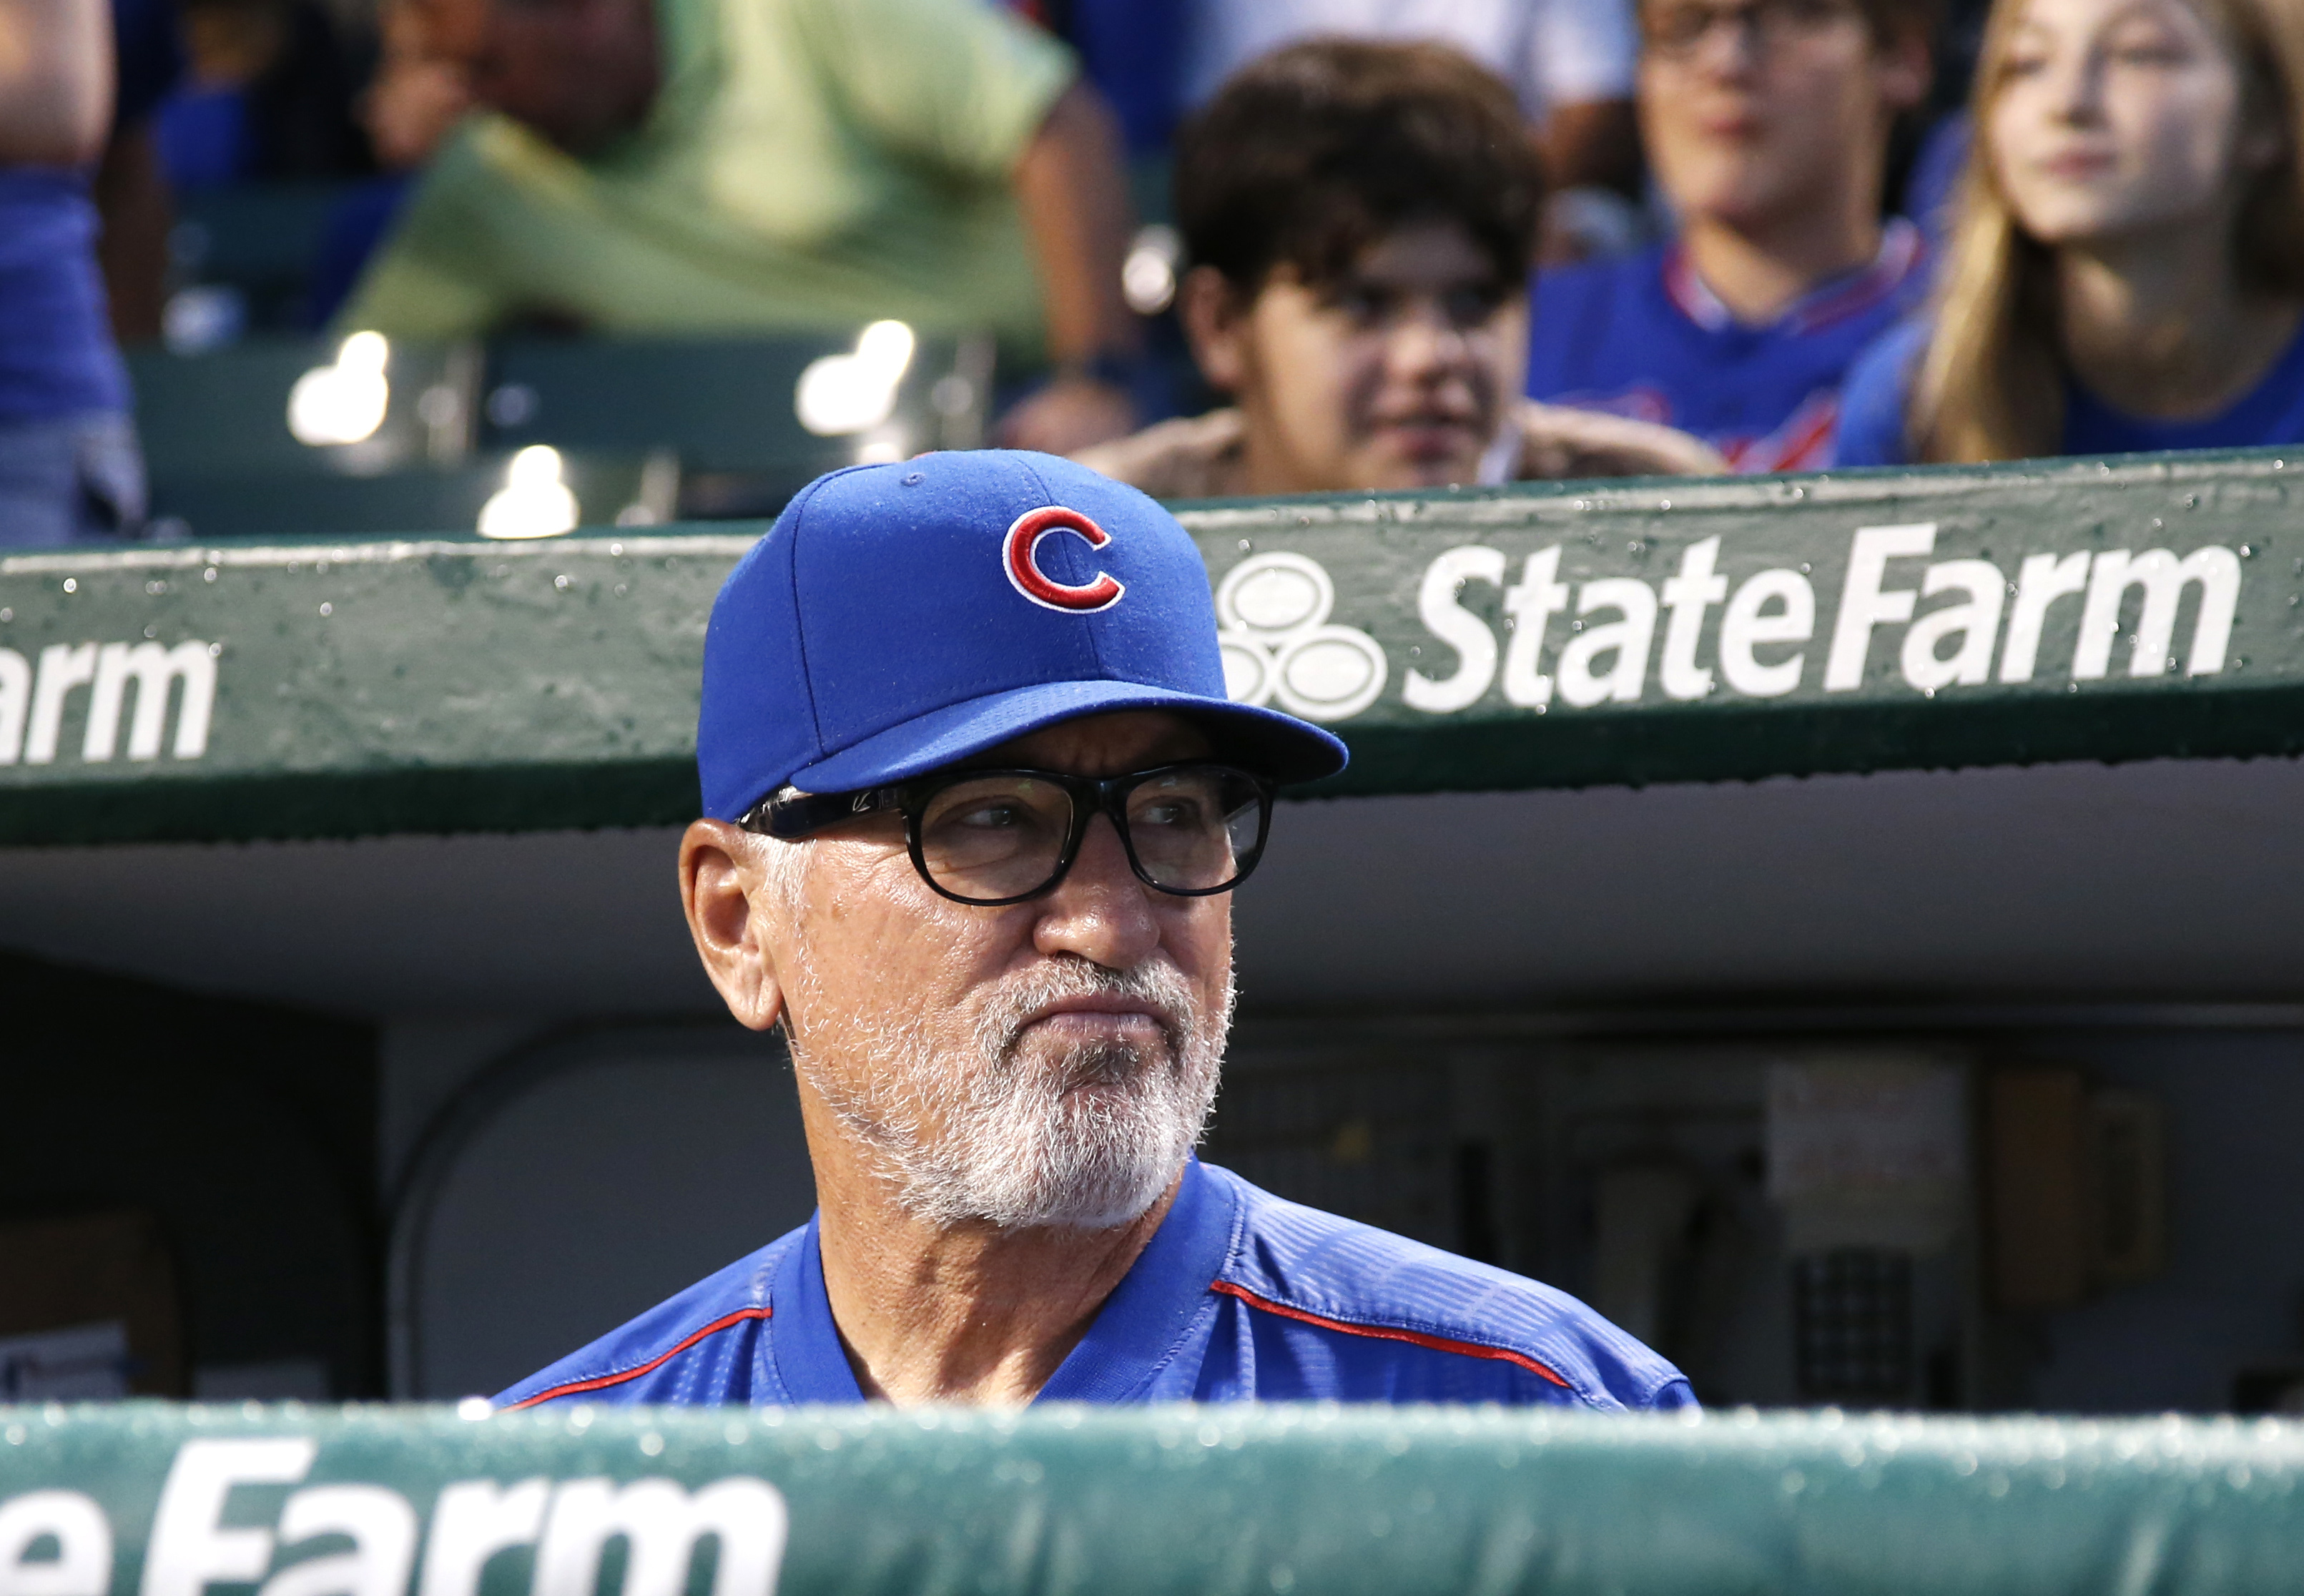 Chicago Cubs manager Joe Maddon looks to the field before a baseball game against the Atlanta Braves Thursday, July 7, 2016, in Chicago. (AP Photo/Nam Y. Huh)